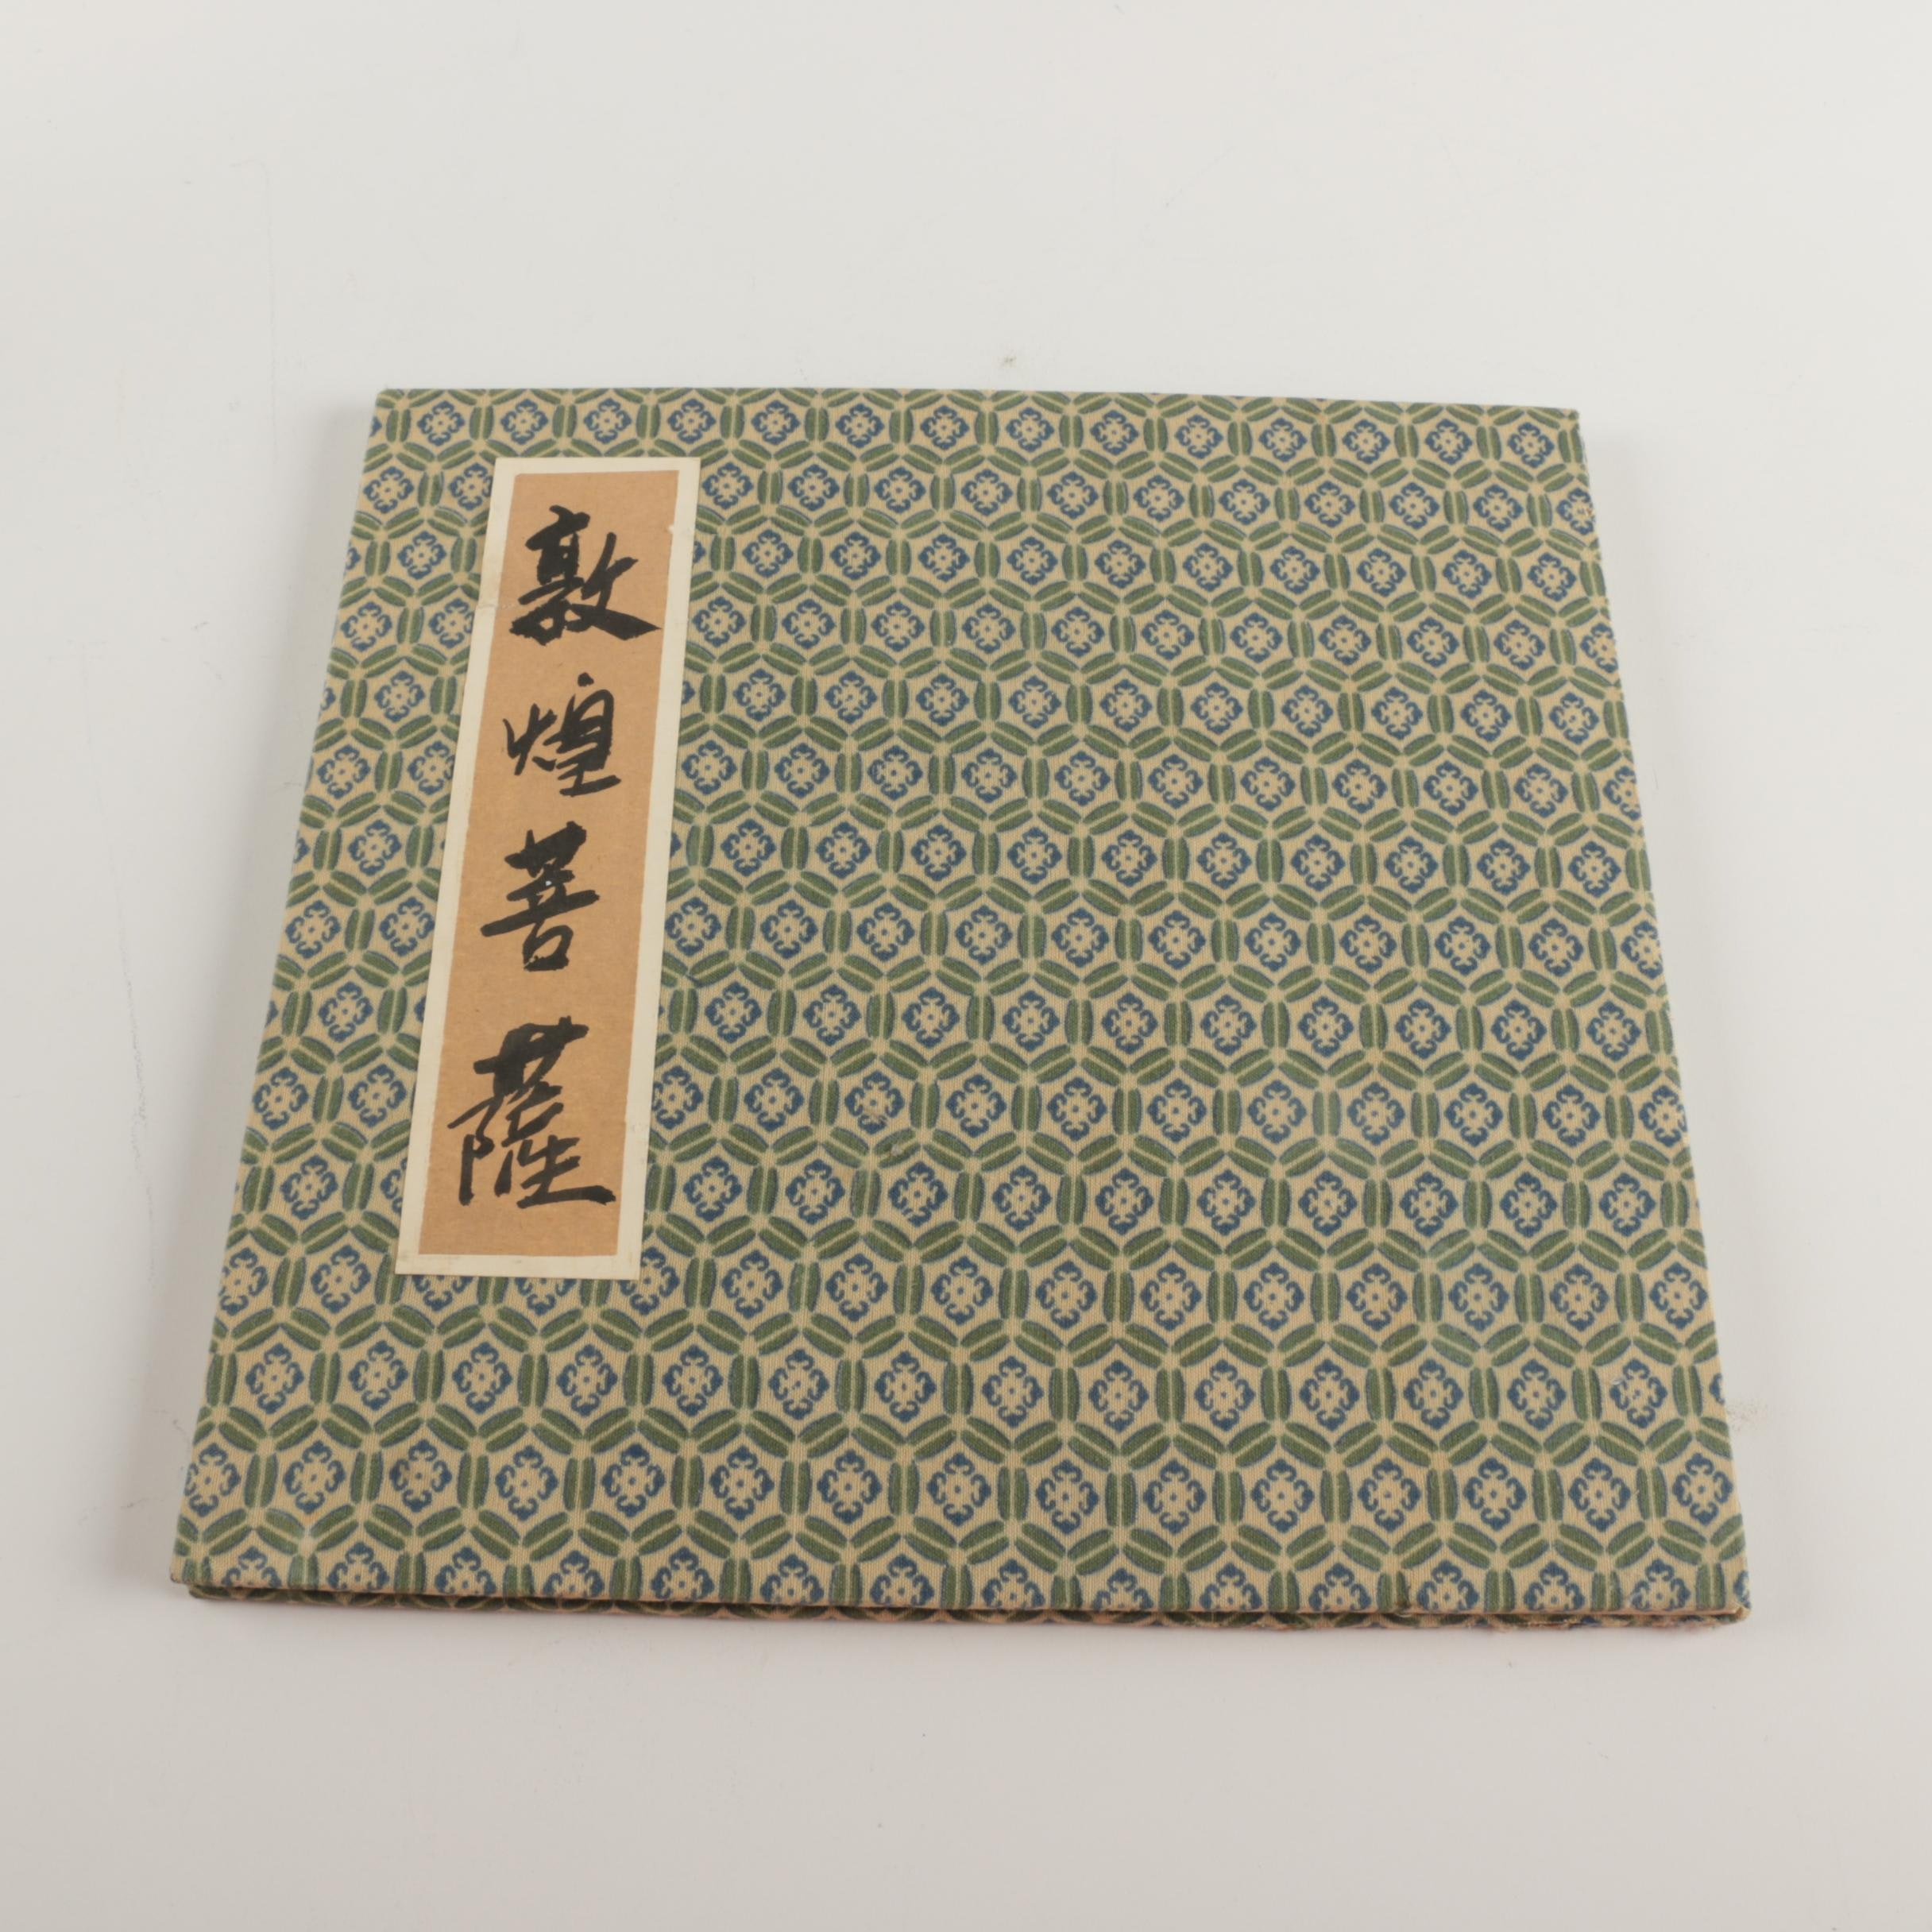 East Asian Buddhist Sutra Folding Book